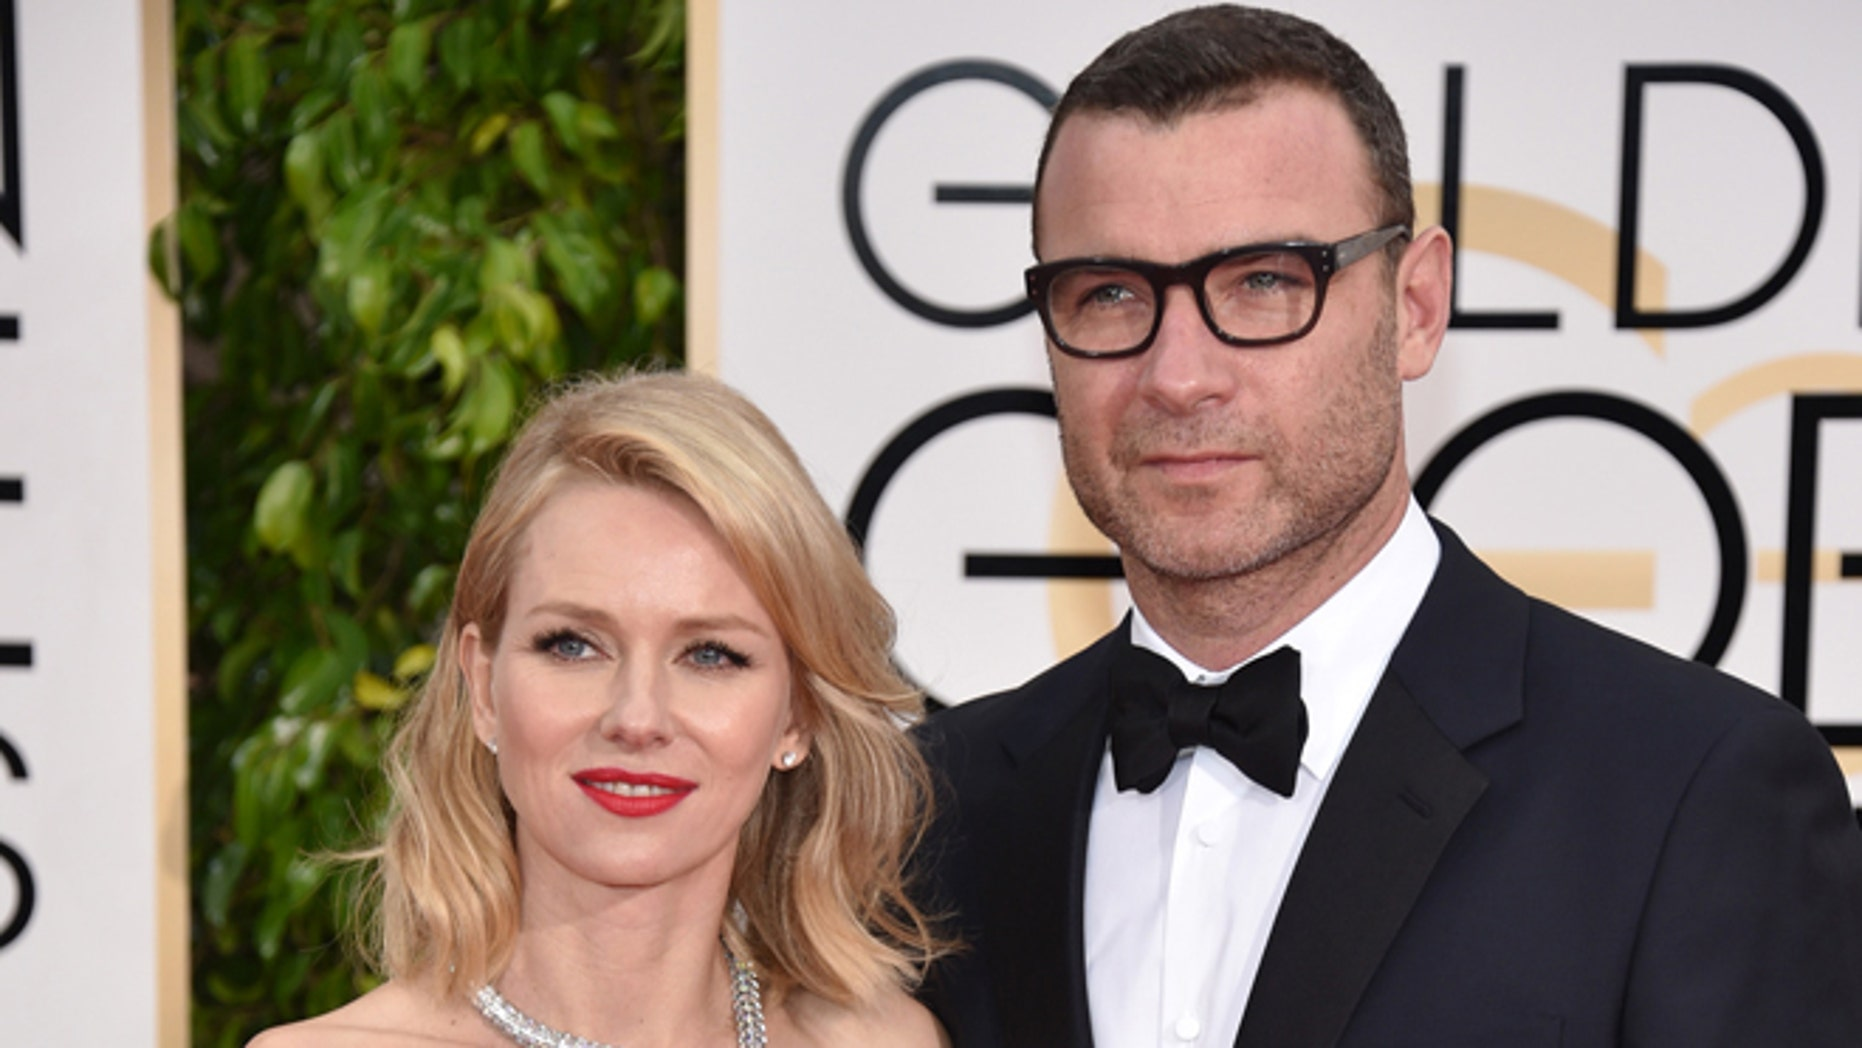 In this Jan. 11, 2015 file photo, Naomi Watts, left, and Liev Schreiber arrive at the 72nd annual Golden Globe Awards in Beverly Hills, Calif.